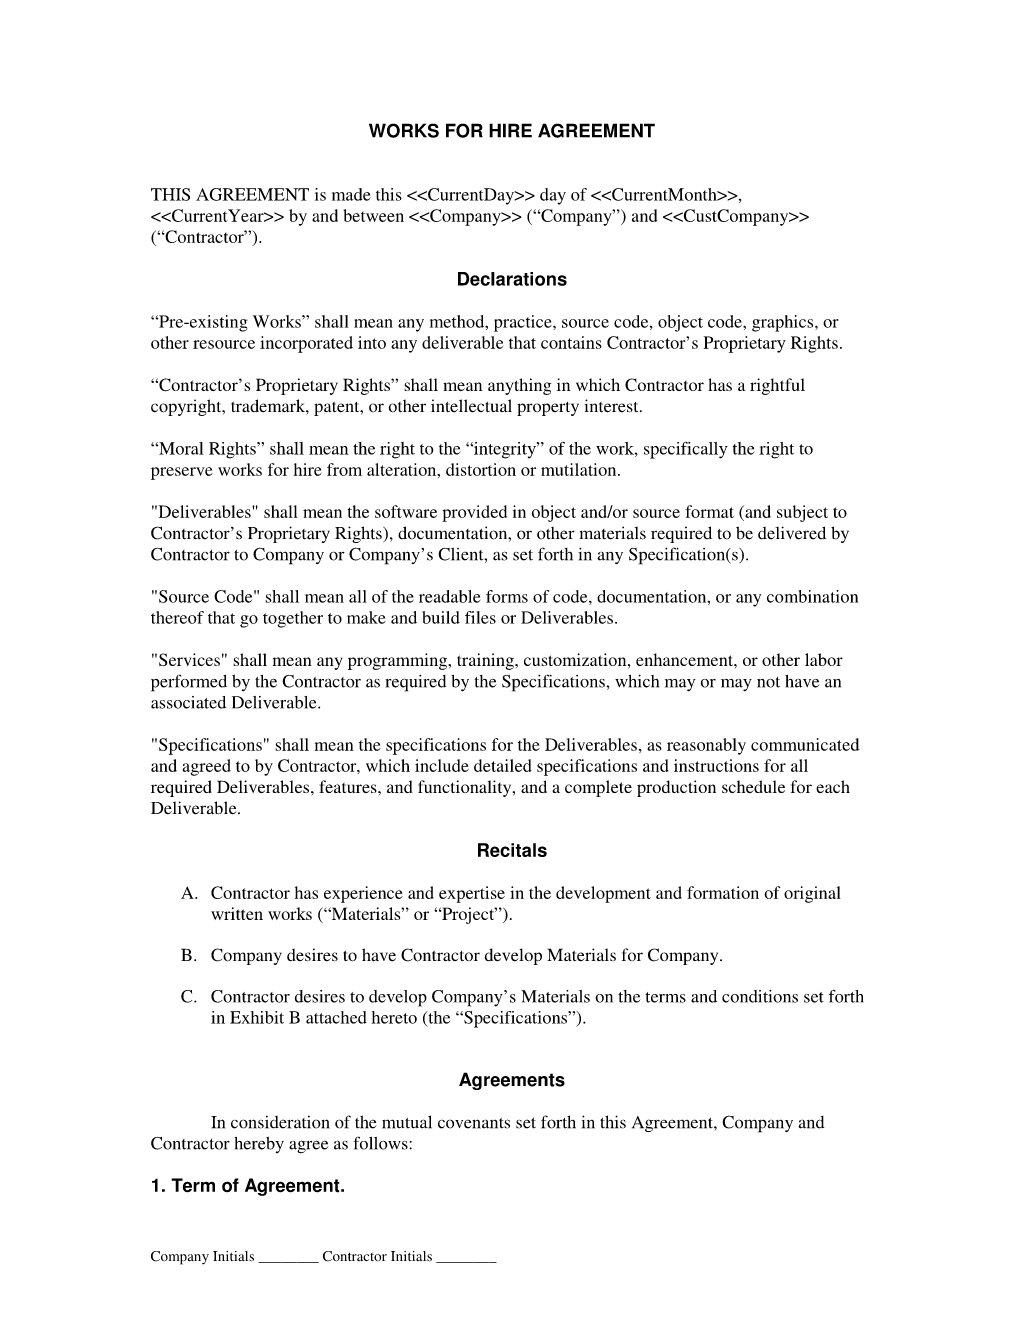 Works For Hire Agreement General Serviceproduct Contracts